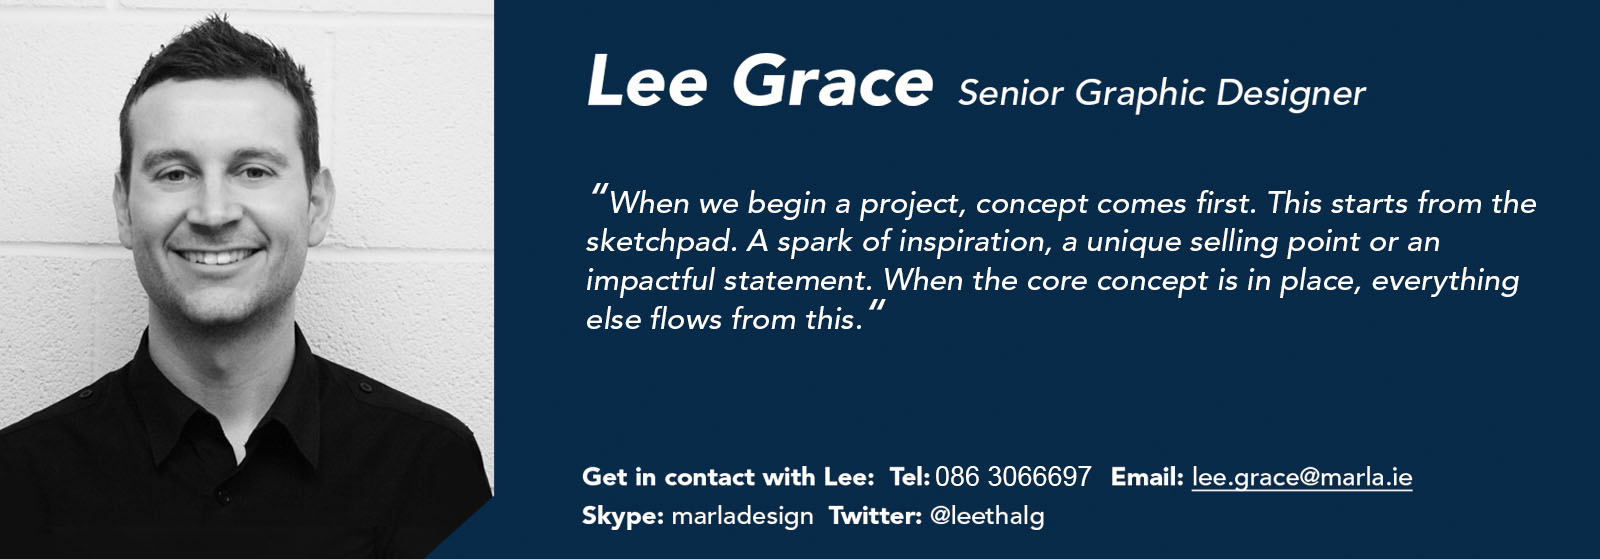 Lee Grace - Senior Graphic Designer - Márla Communications